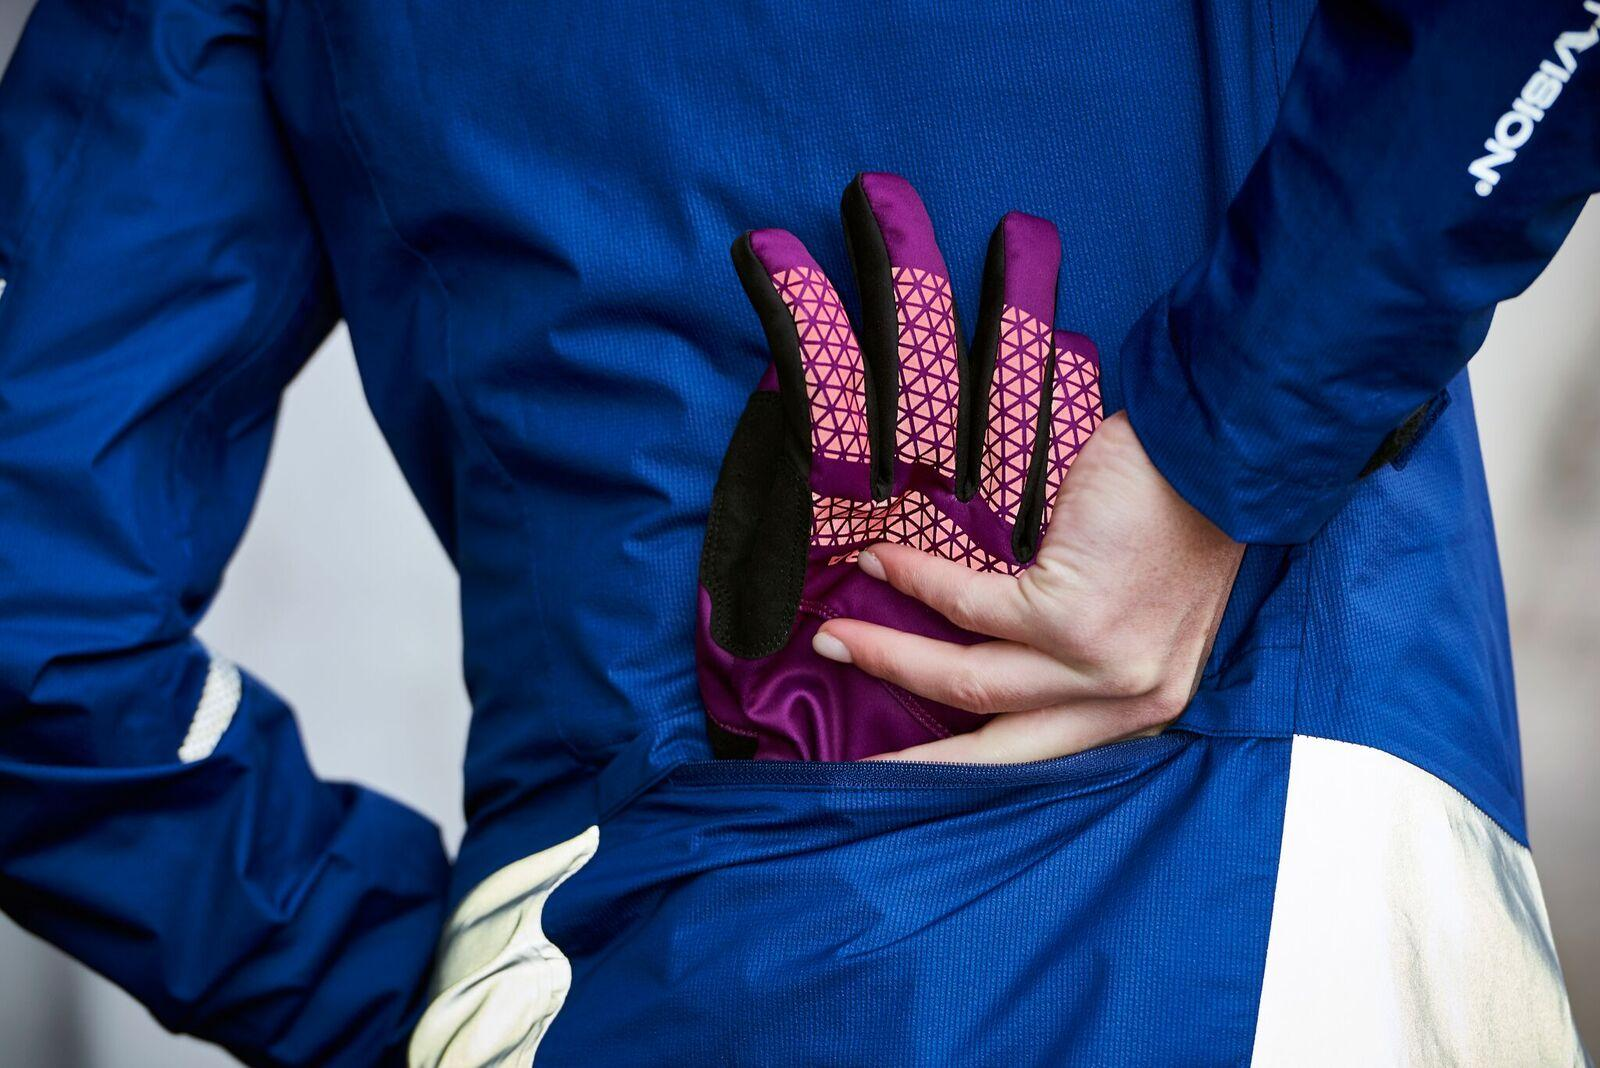 Gloves into a cycling pocket